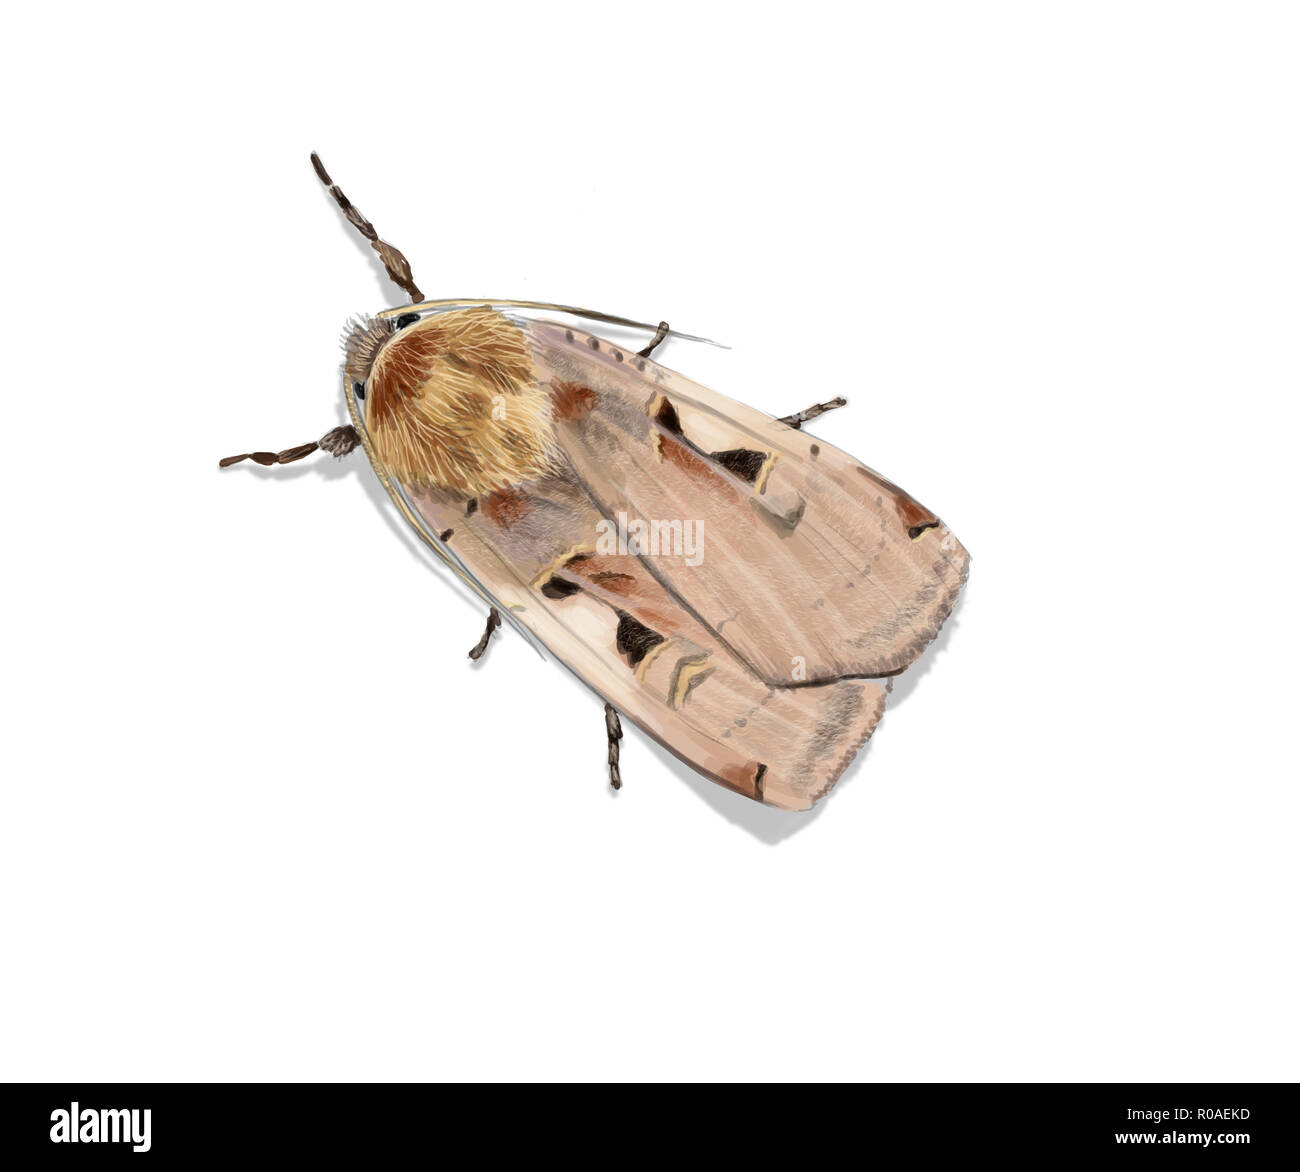 Digital illustration of the moth Setaceous Hebrew character - Stock Image